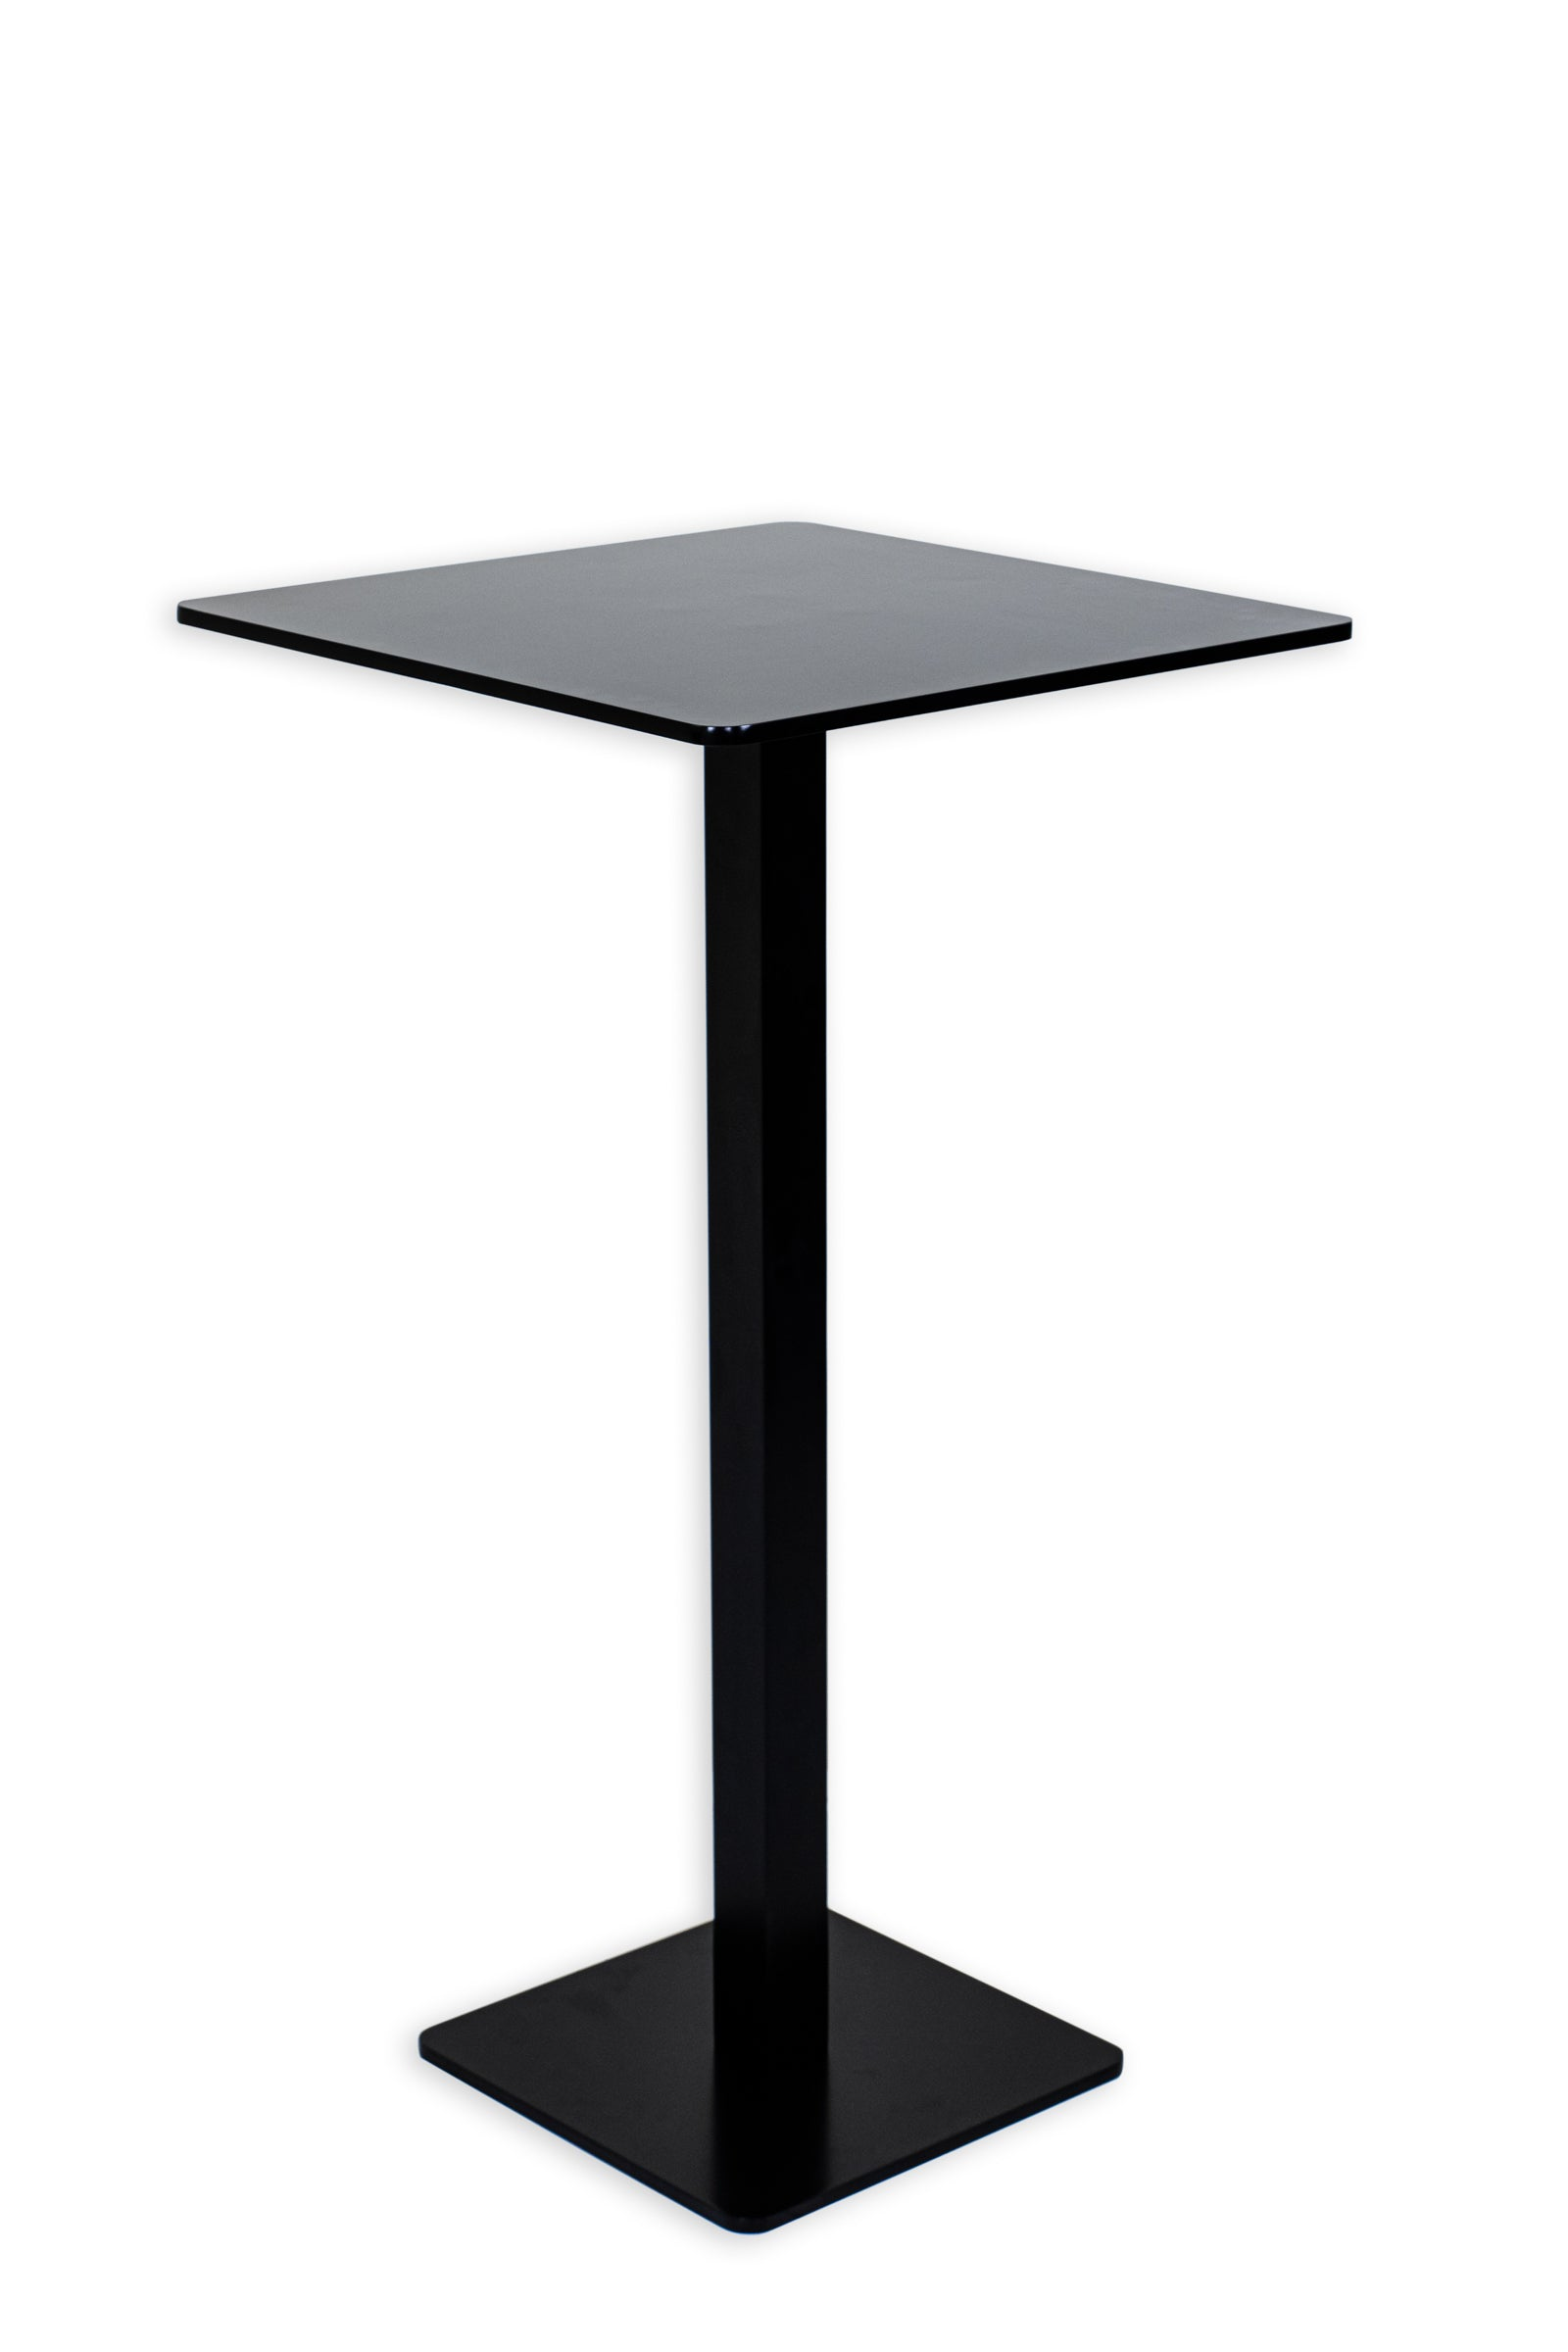 Squared Aluminum Pub Table - Blatt Billiards